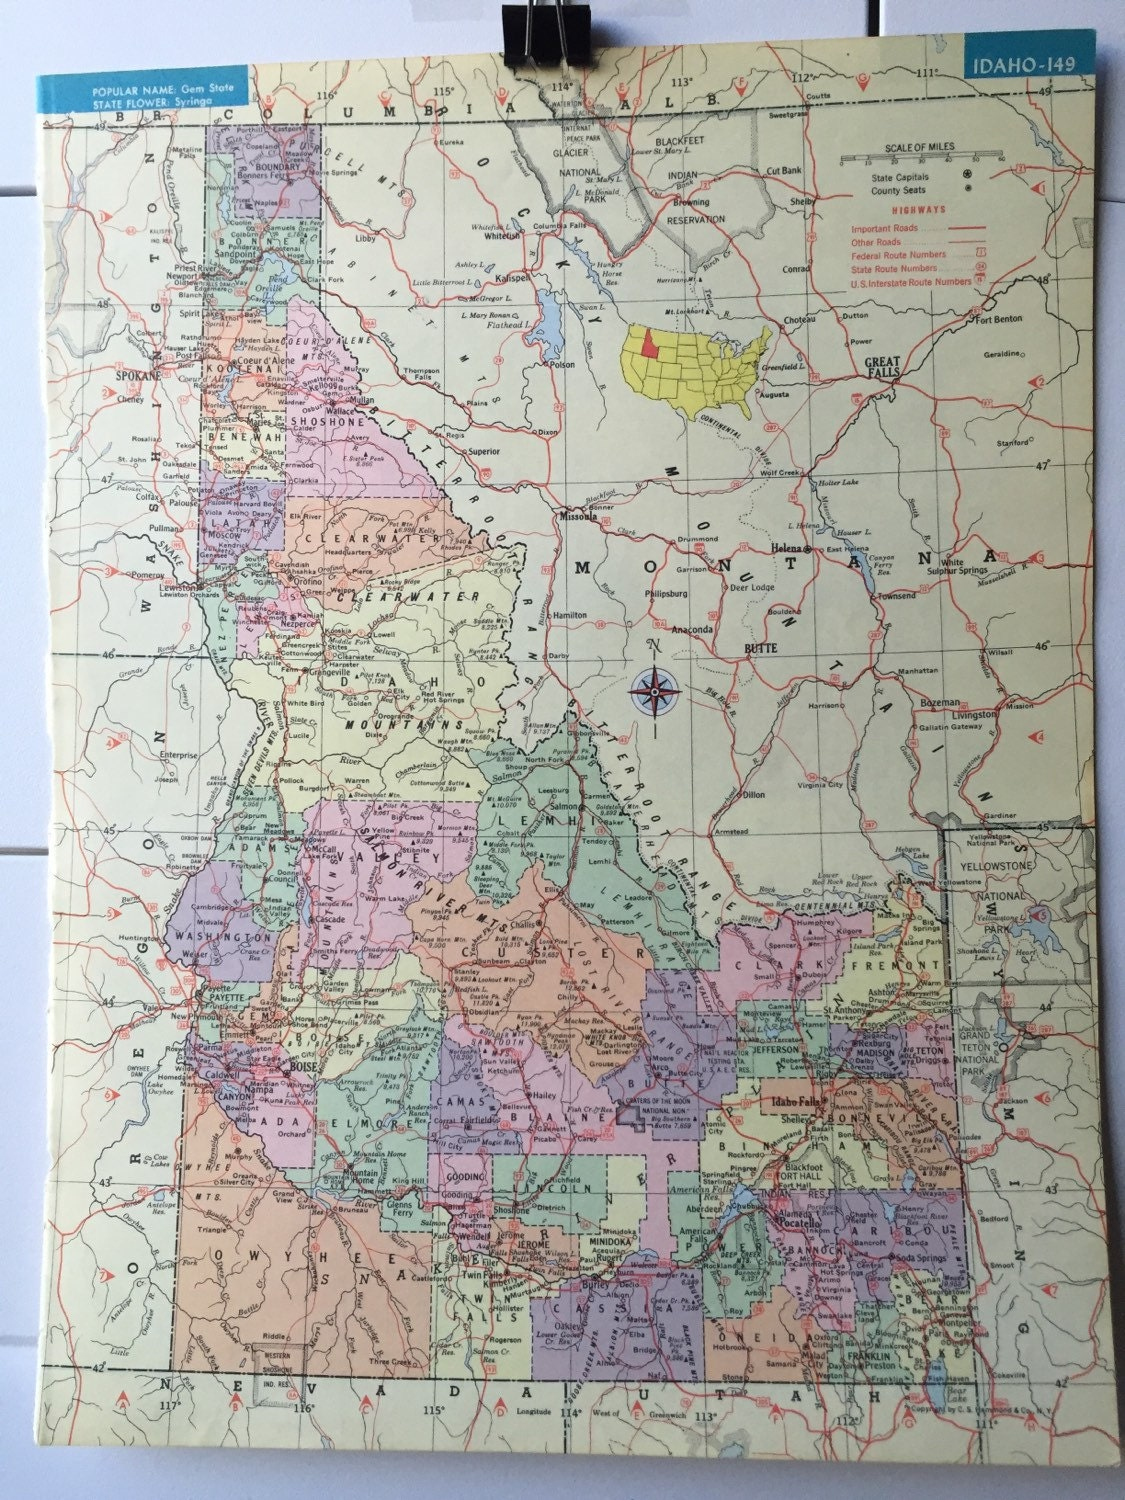 Vintage 1965 hammonds world atlas map page idaho on one side and 500 gumiabroncs Image collections